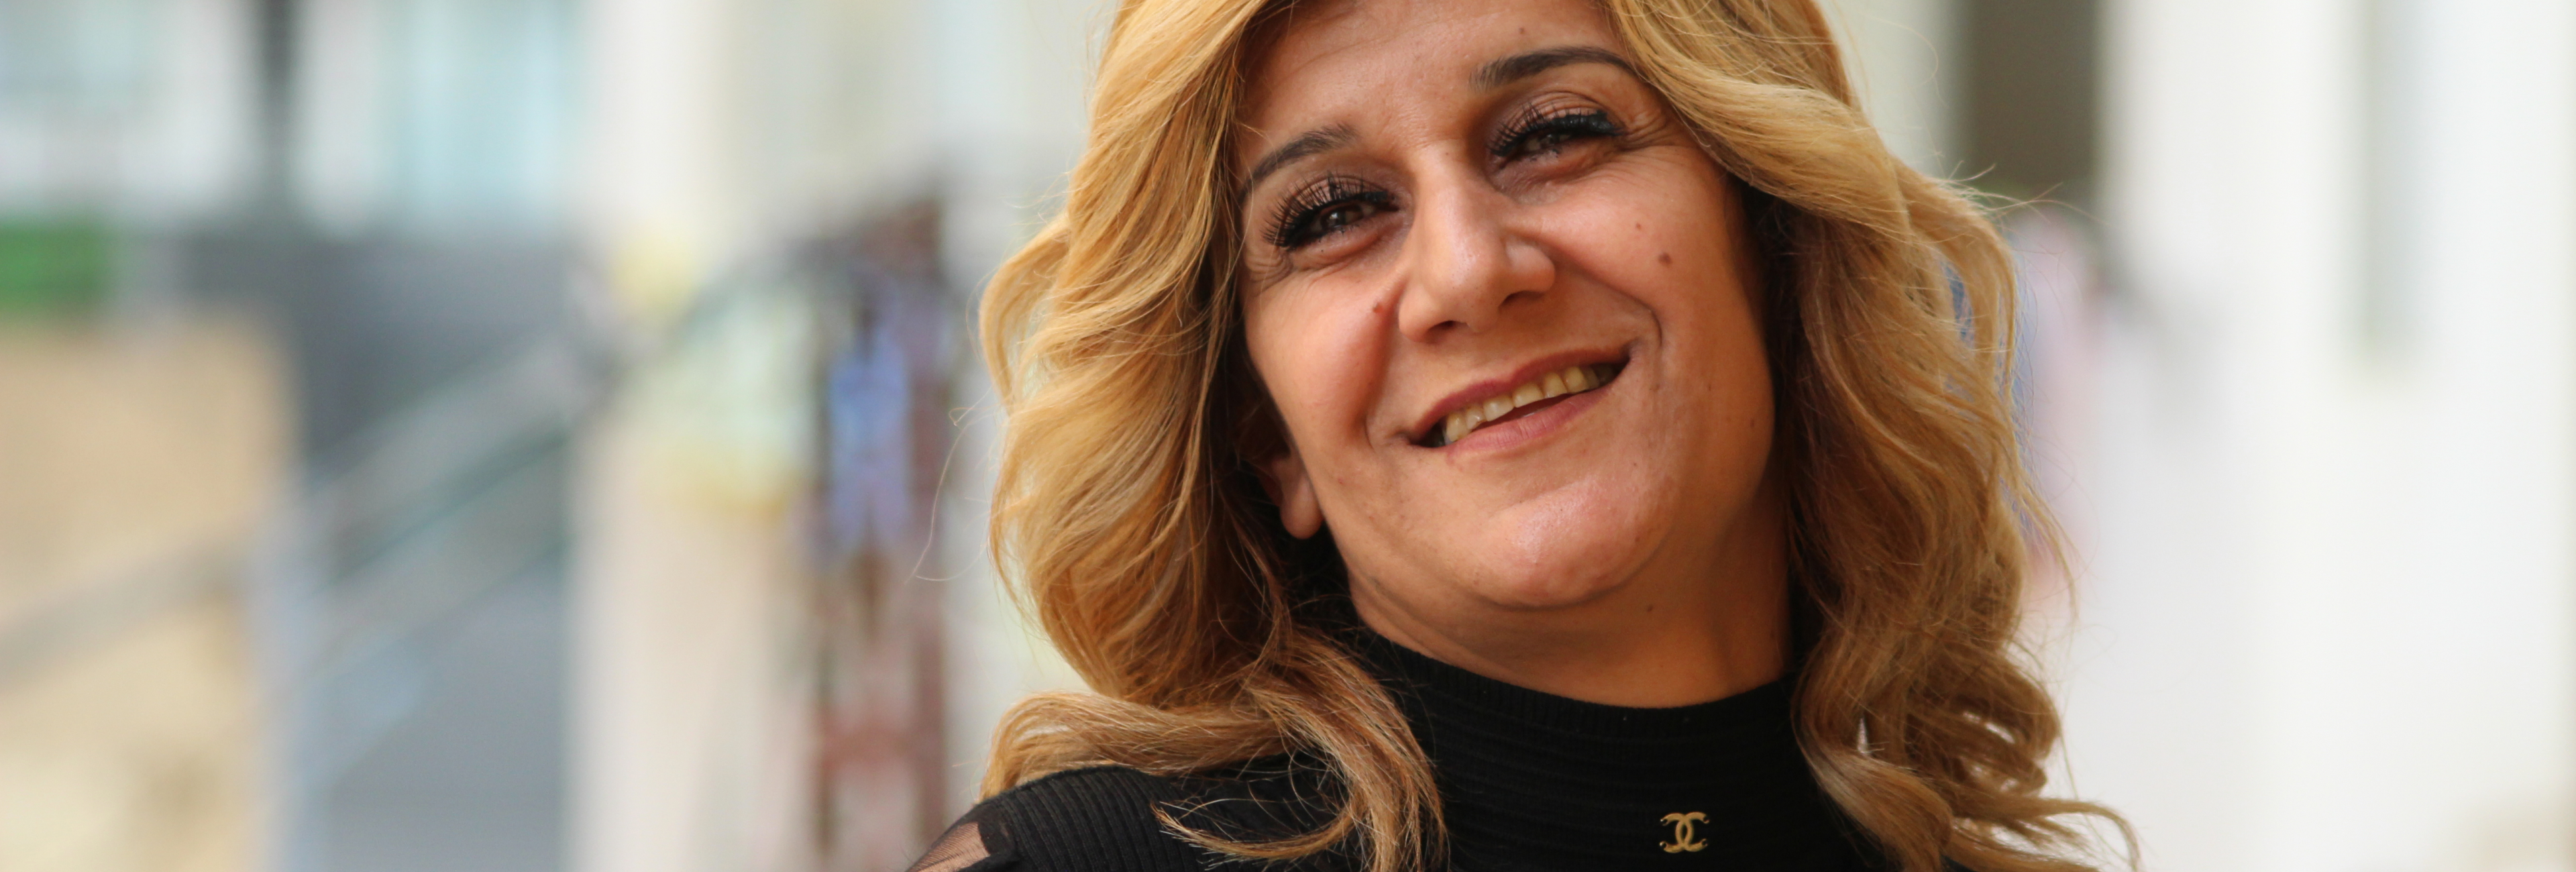 Faten Merhi, 39, beneficiary of the EU-funded DAWRIC project, Chiyah, Lebanon.